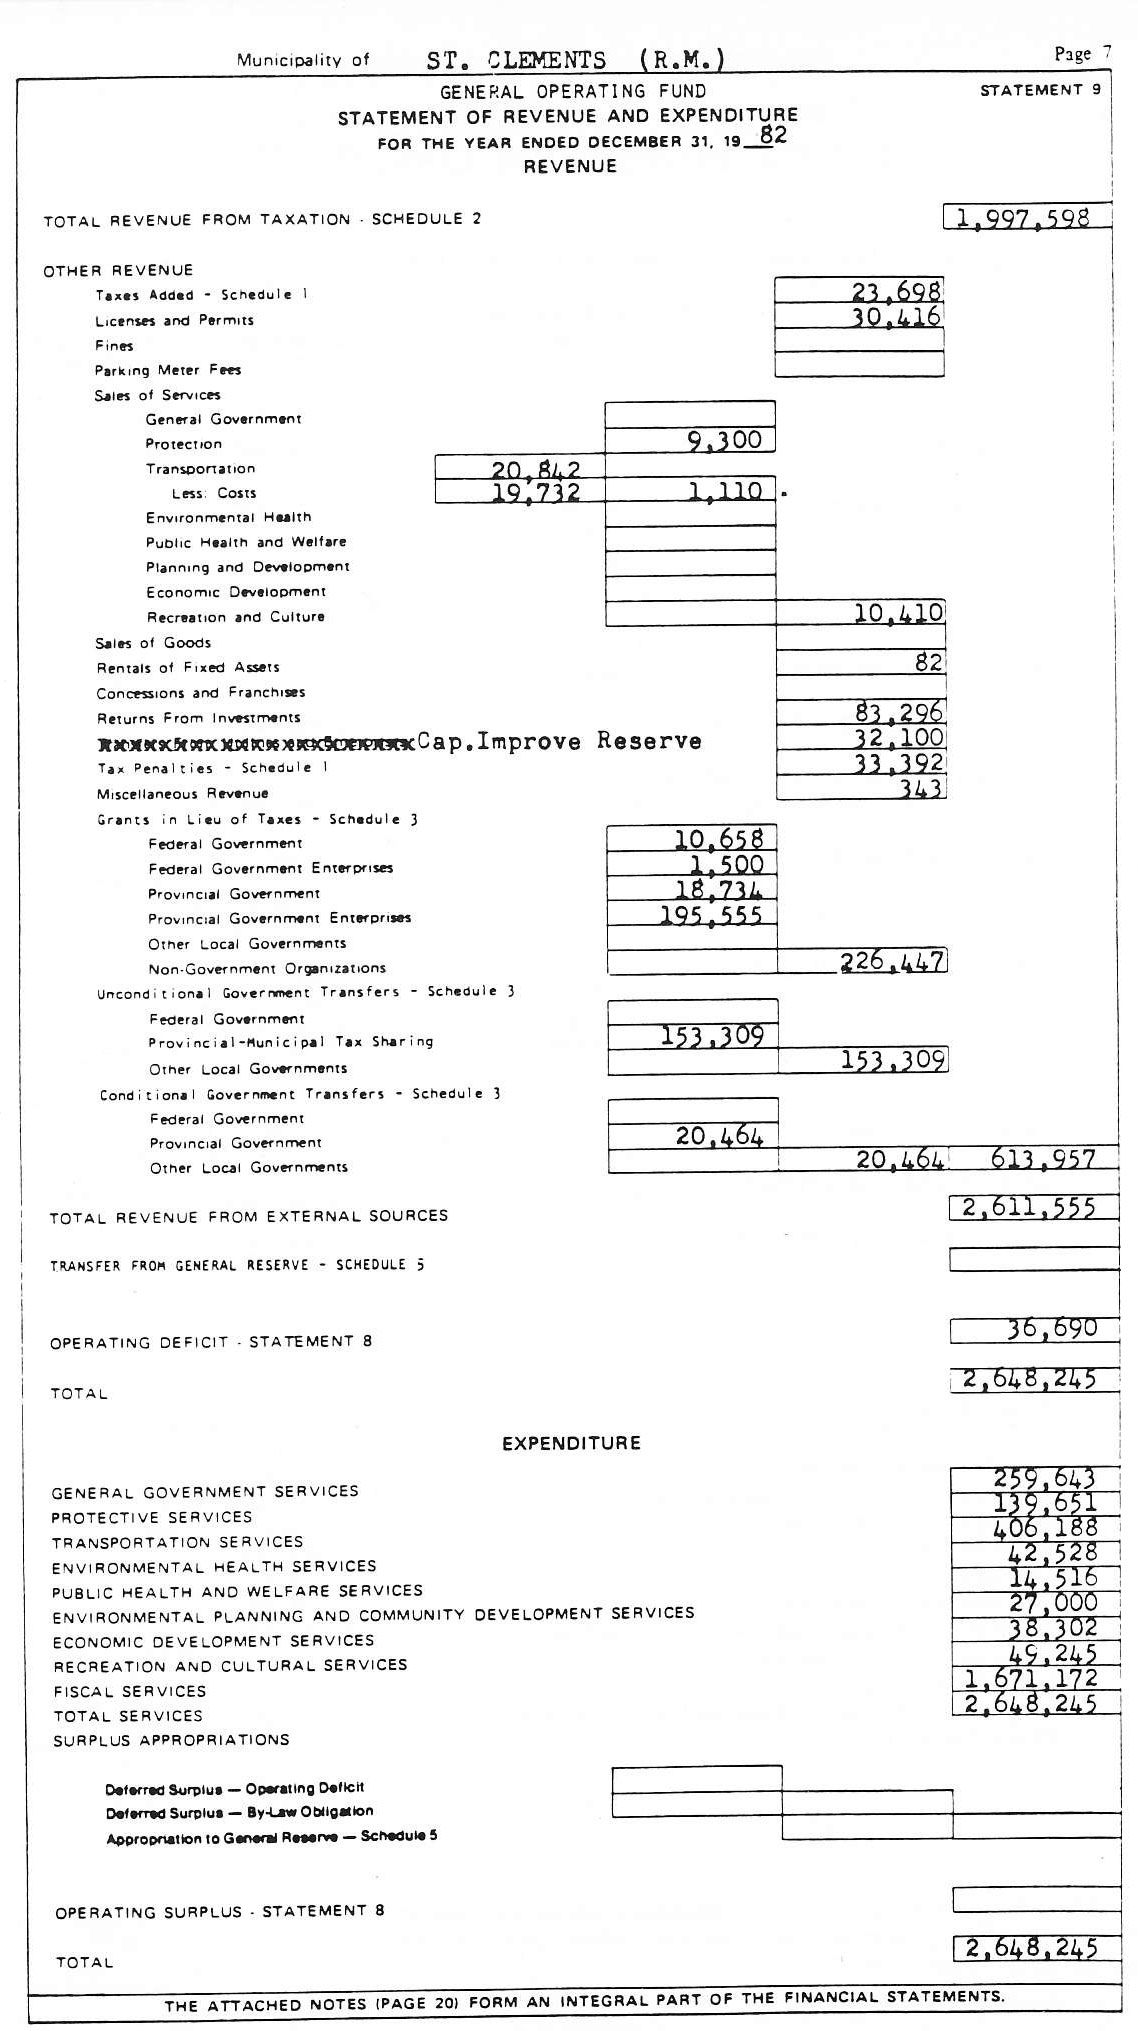 Financial Statement 1982 page 1